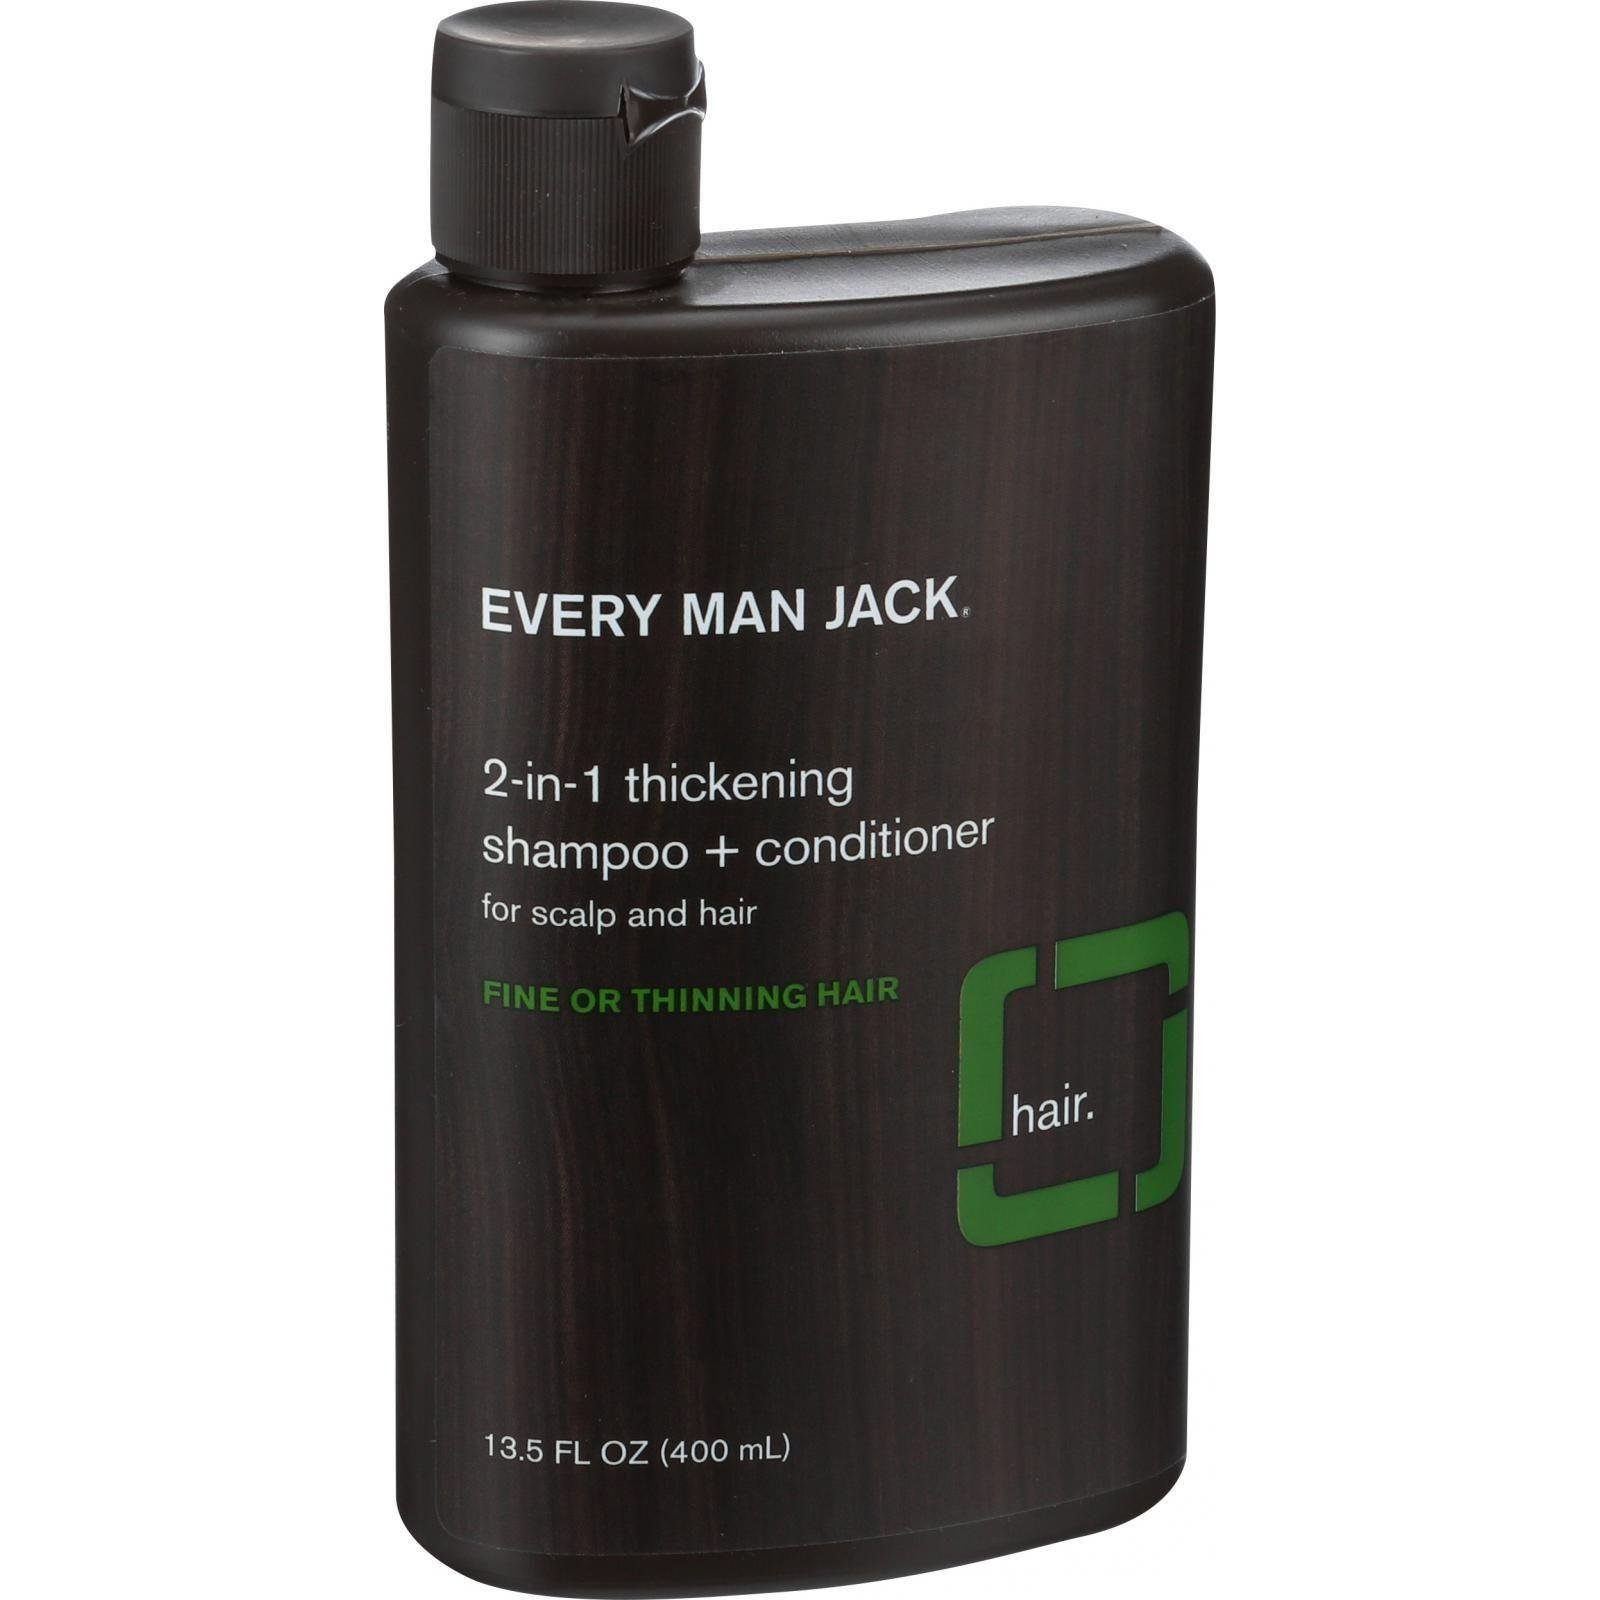 EVERY MAN JACK SHAMPOO 2IN1 THCKNG TTREE 13.5OZ by Every Man Jack